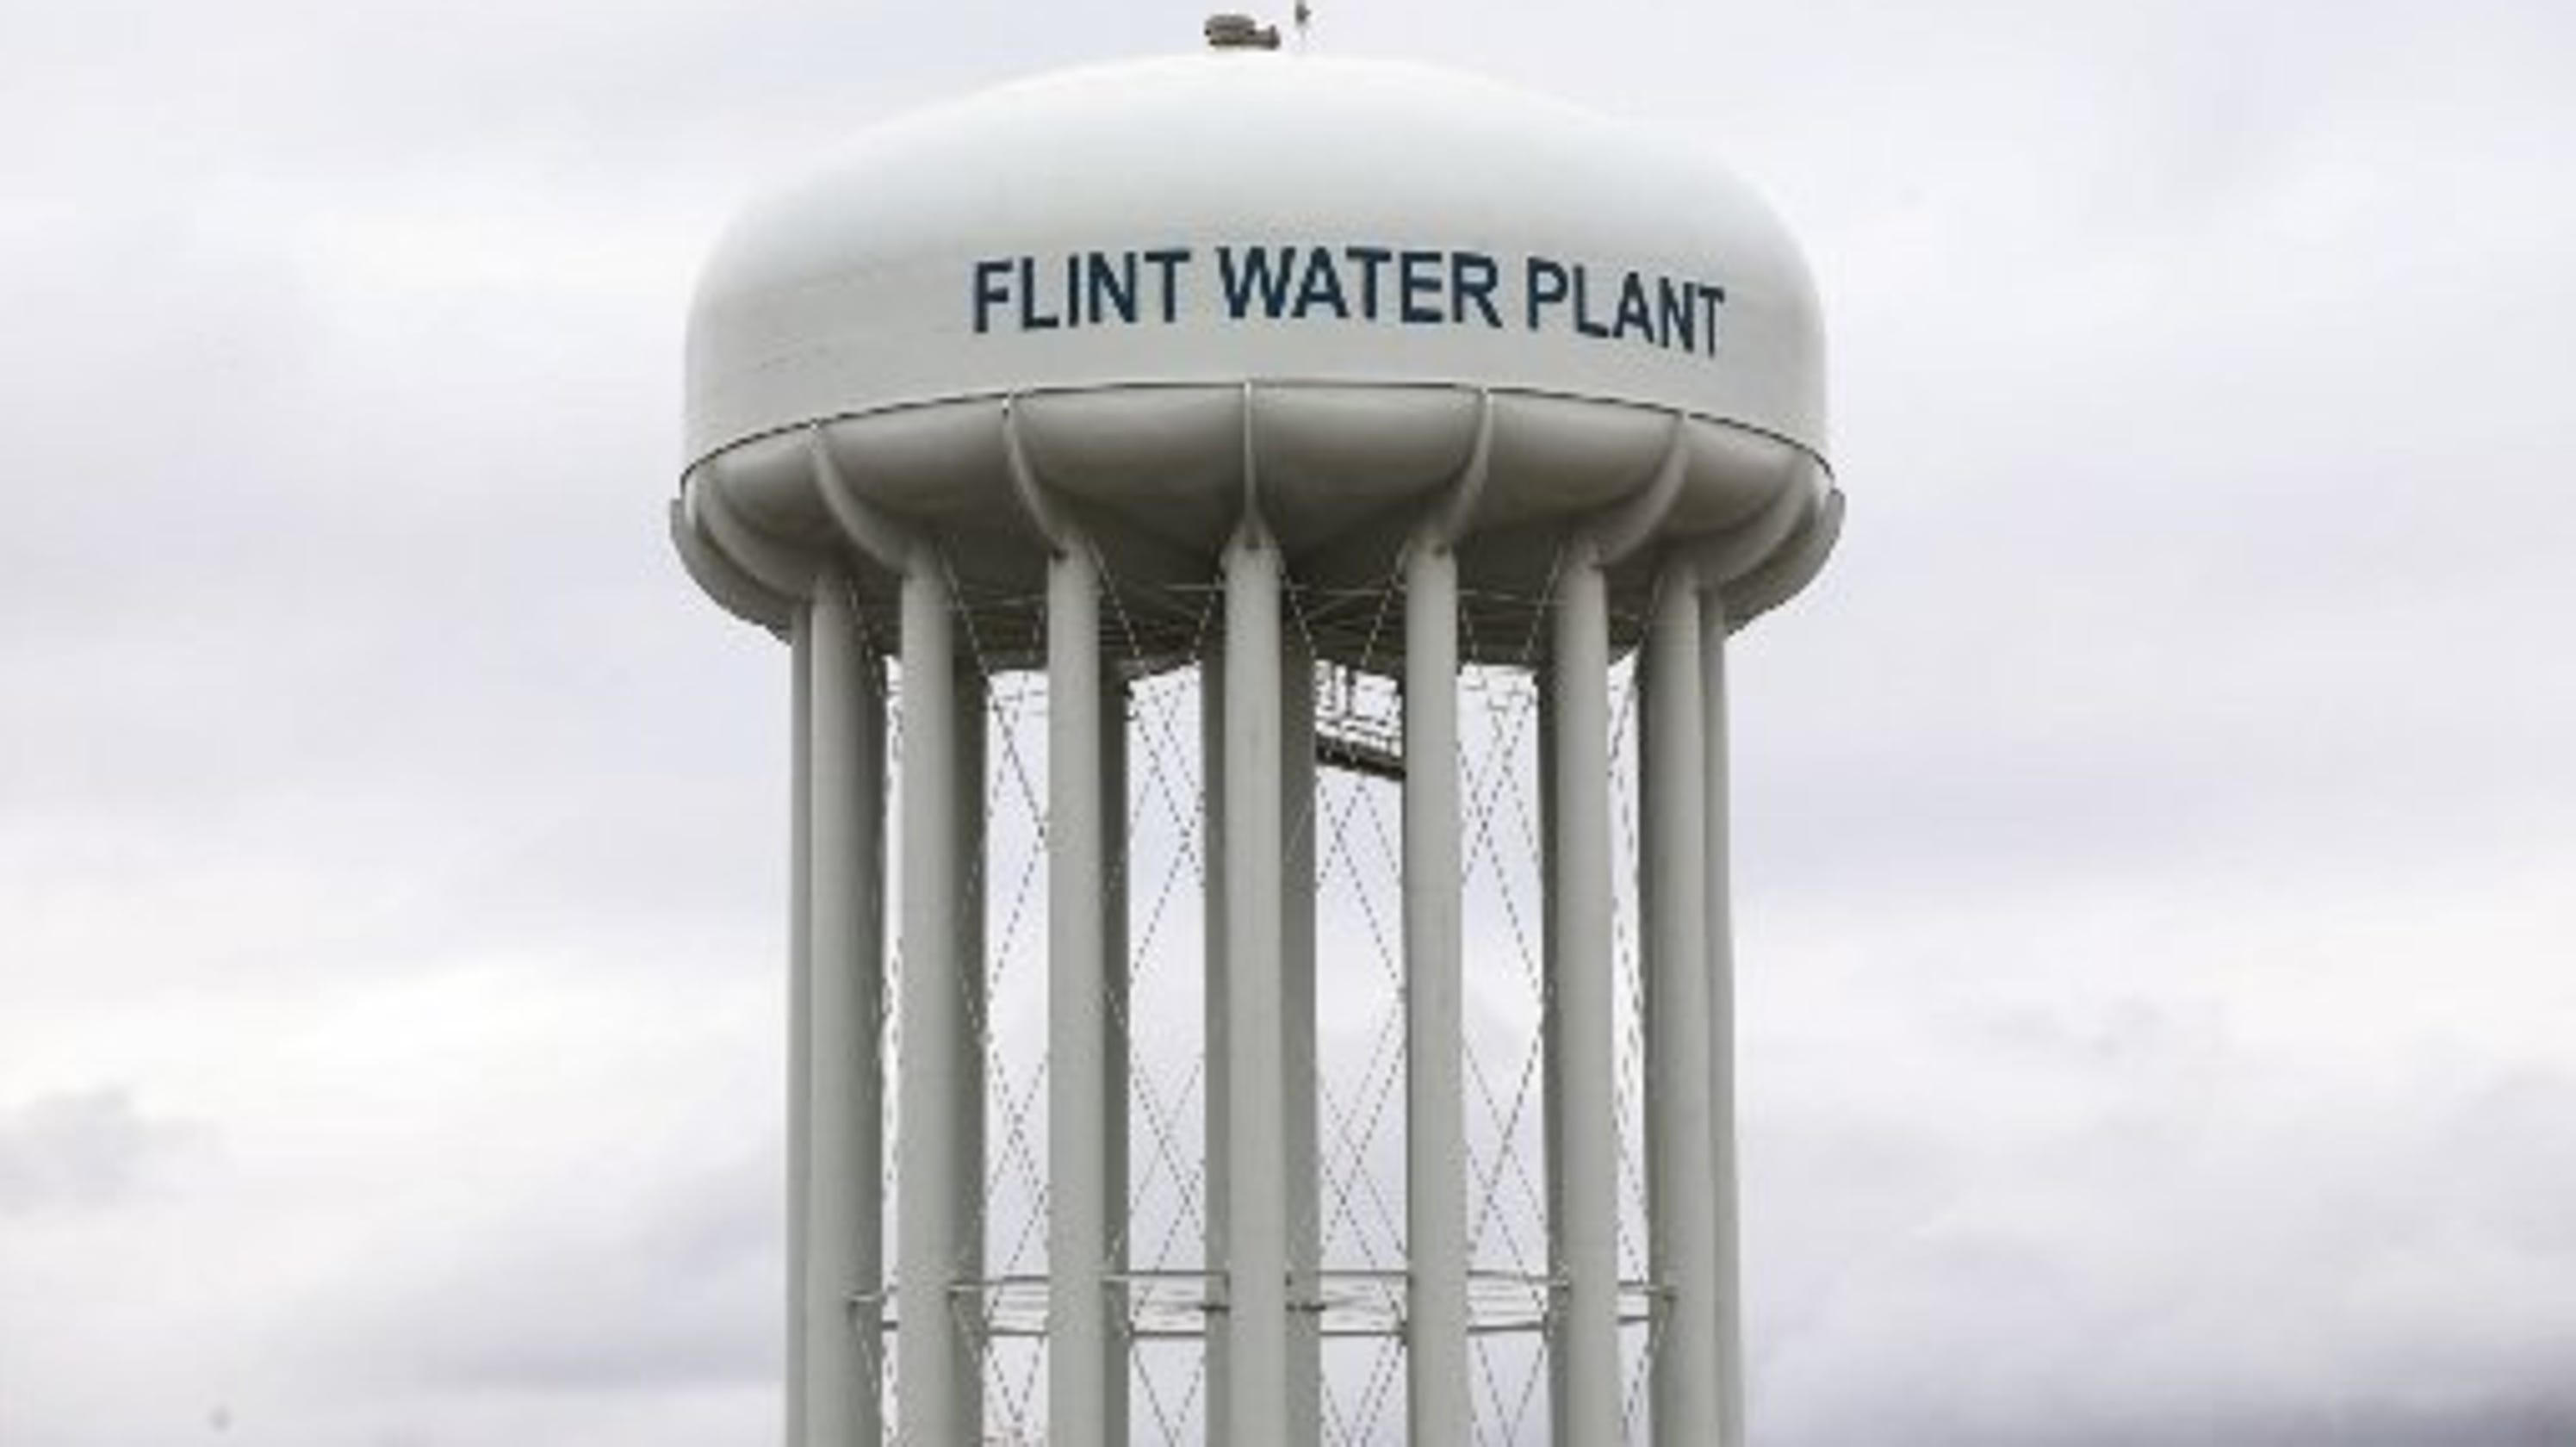 All Flint water crisis criminal charges dismissed by attorney general's office – for now